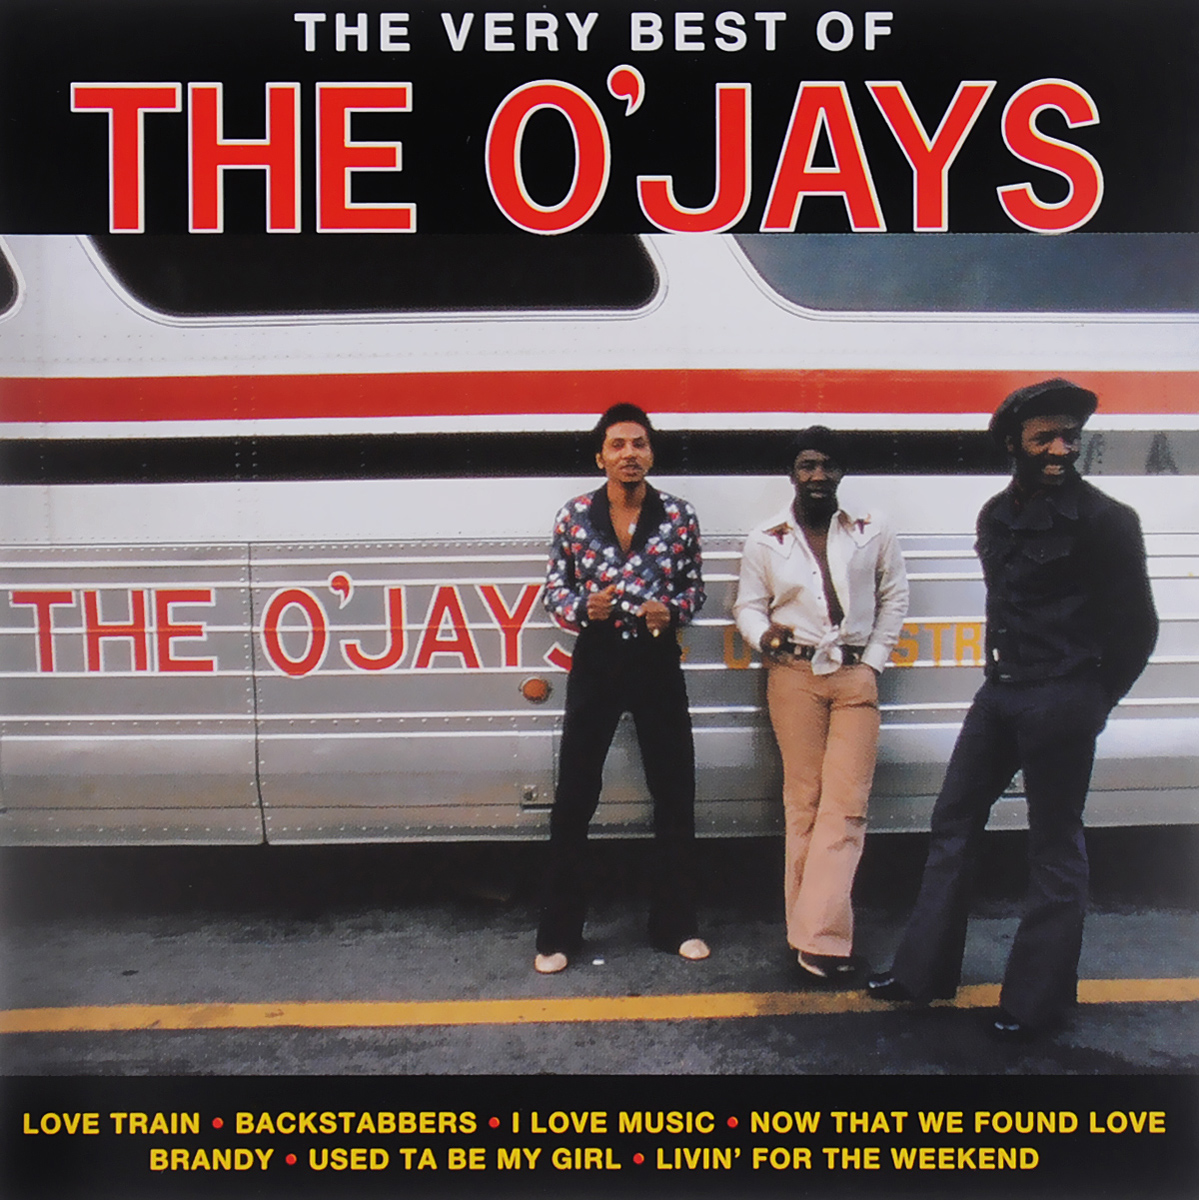 The O'Jays The O'Jays. The Very Best Of The O'Jays дон хенли don henley the very best of